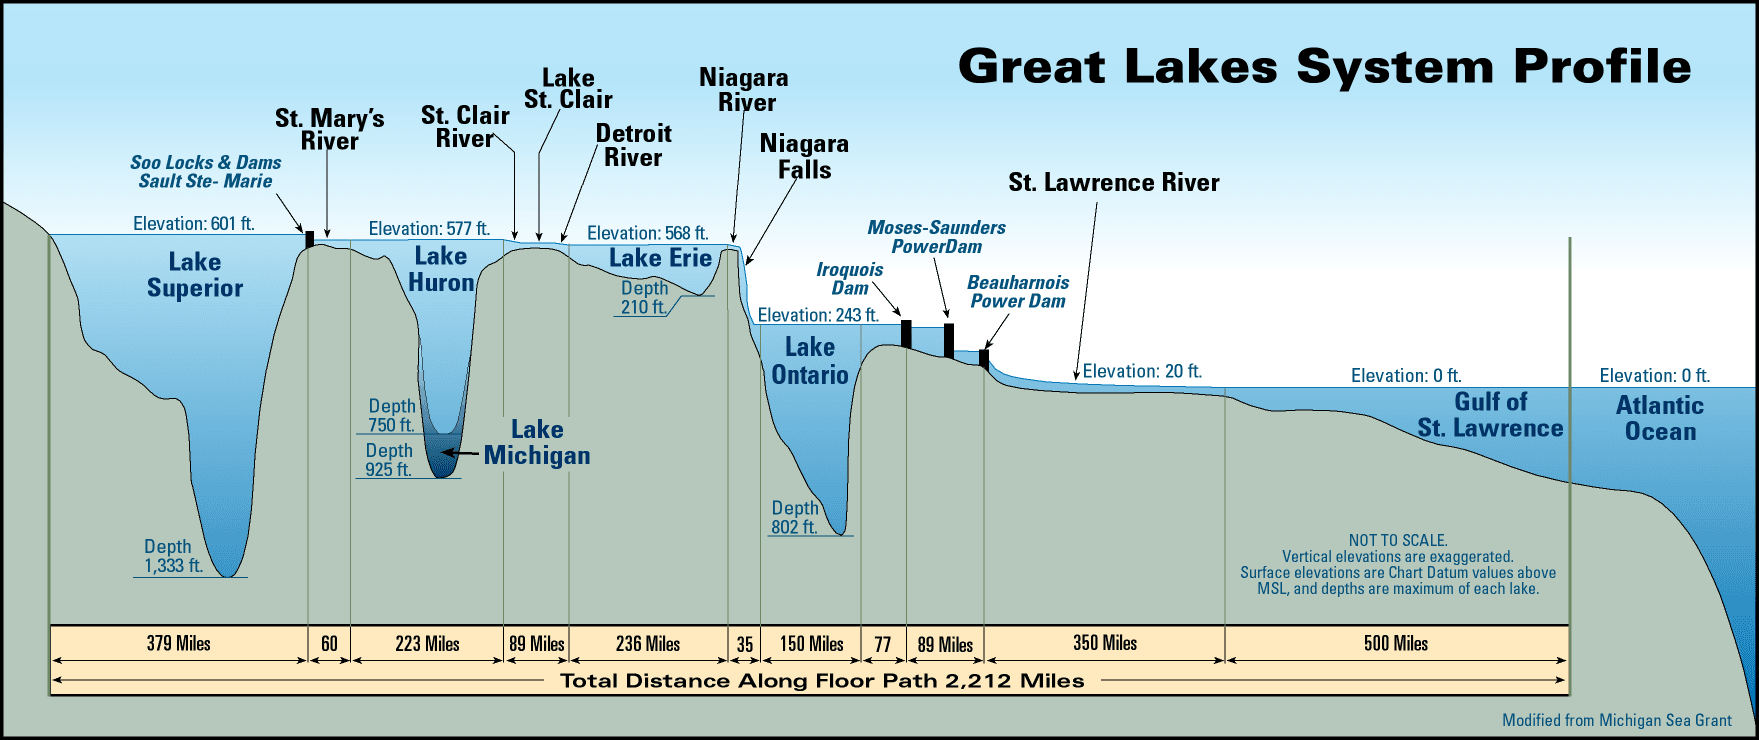 GreatLake-Profile-Big-144dpi